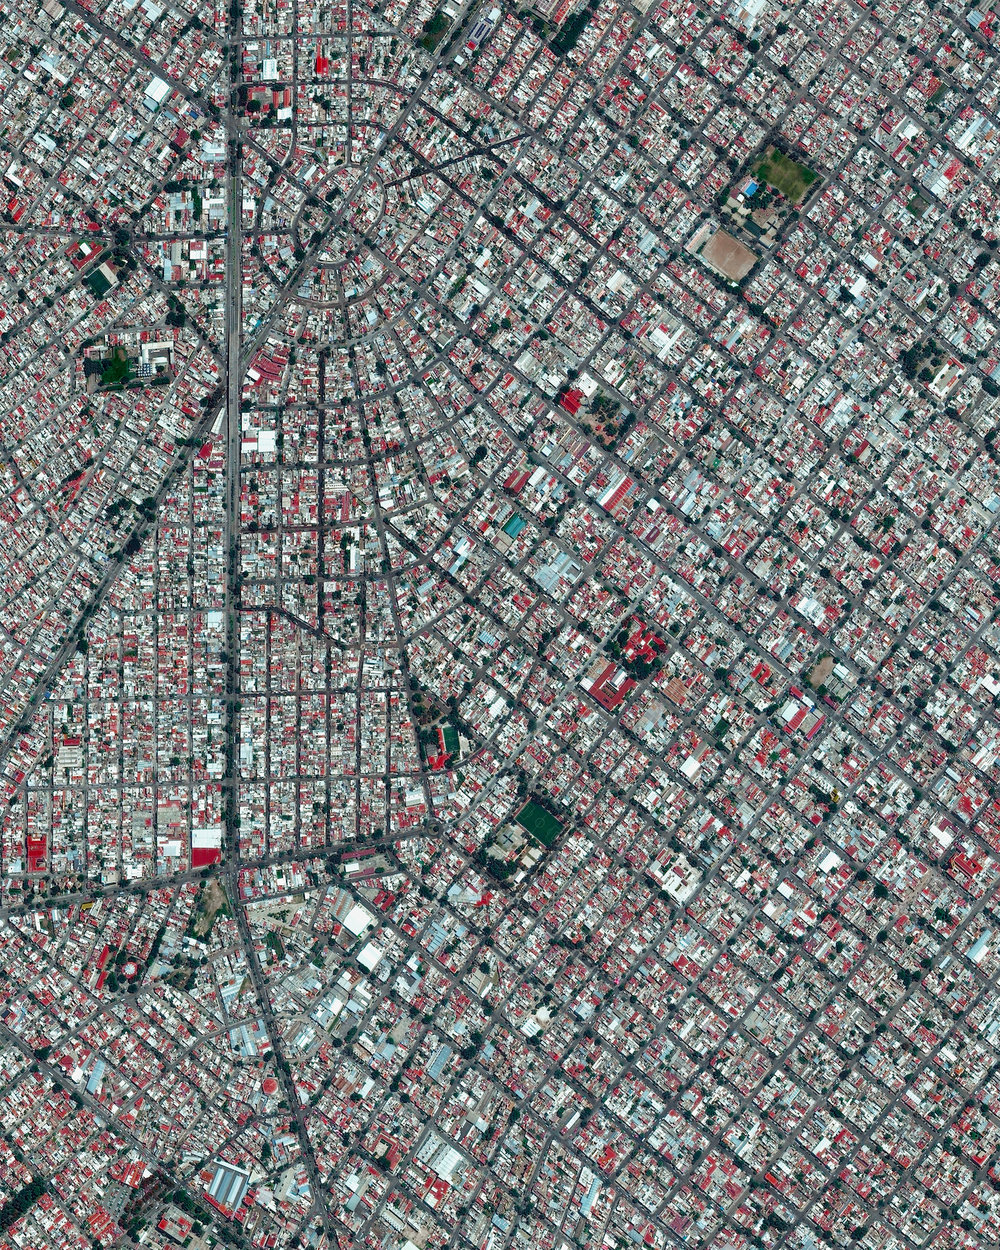 Guadalajara is the second most populous city in Mexico with a population of nearly 1.5 million. It is also one of the country's cultural centers, considered by many to be the home of mariachi music. 20.6895395, -103.3121785